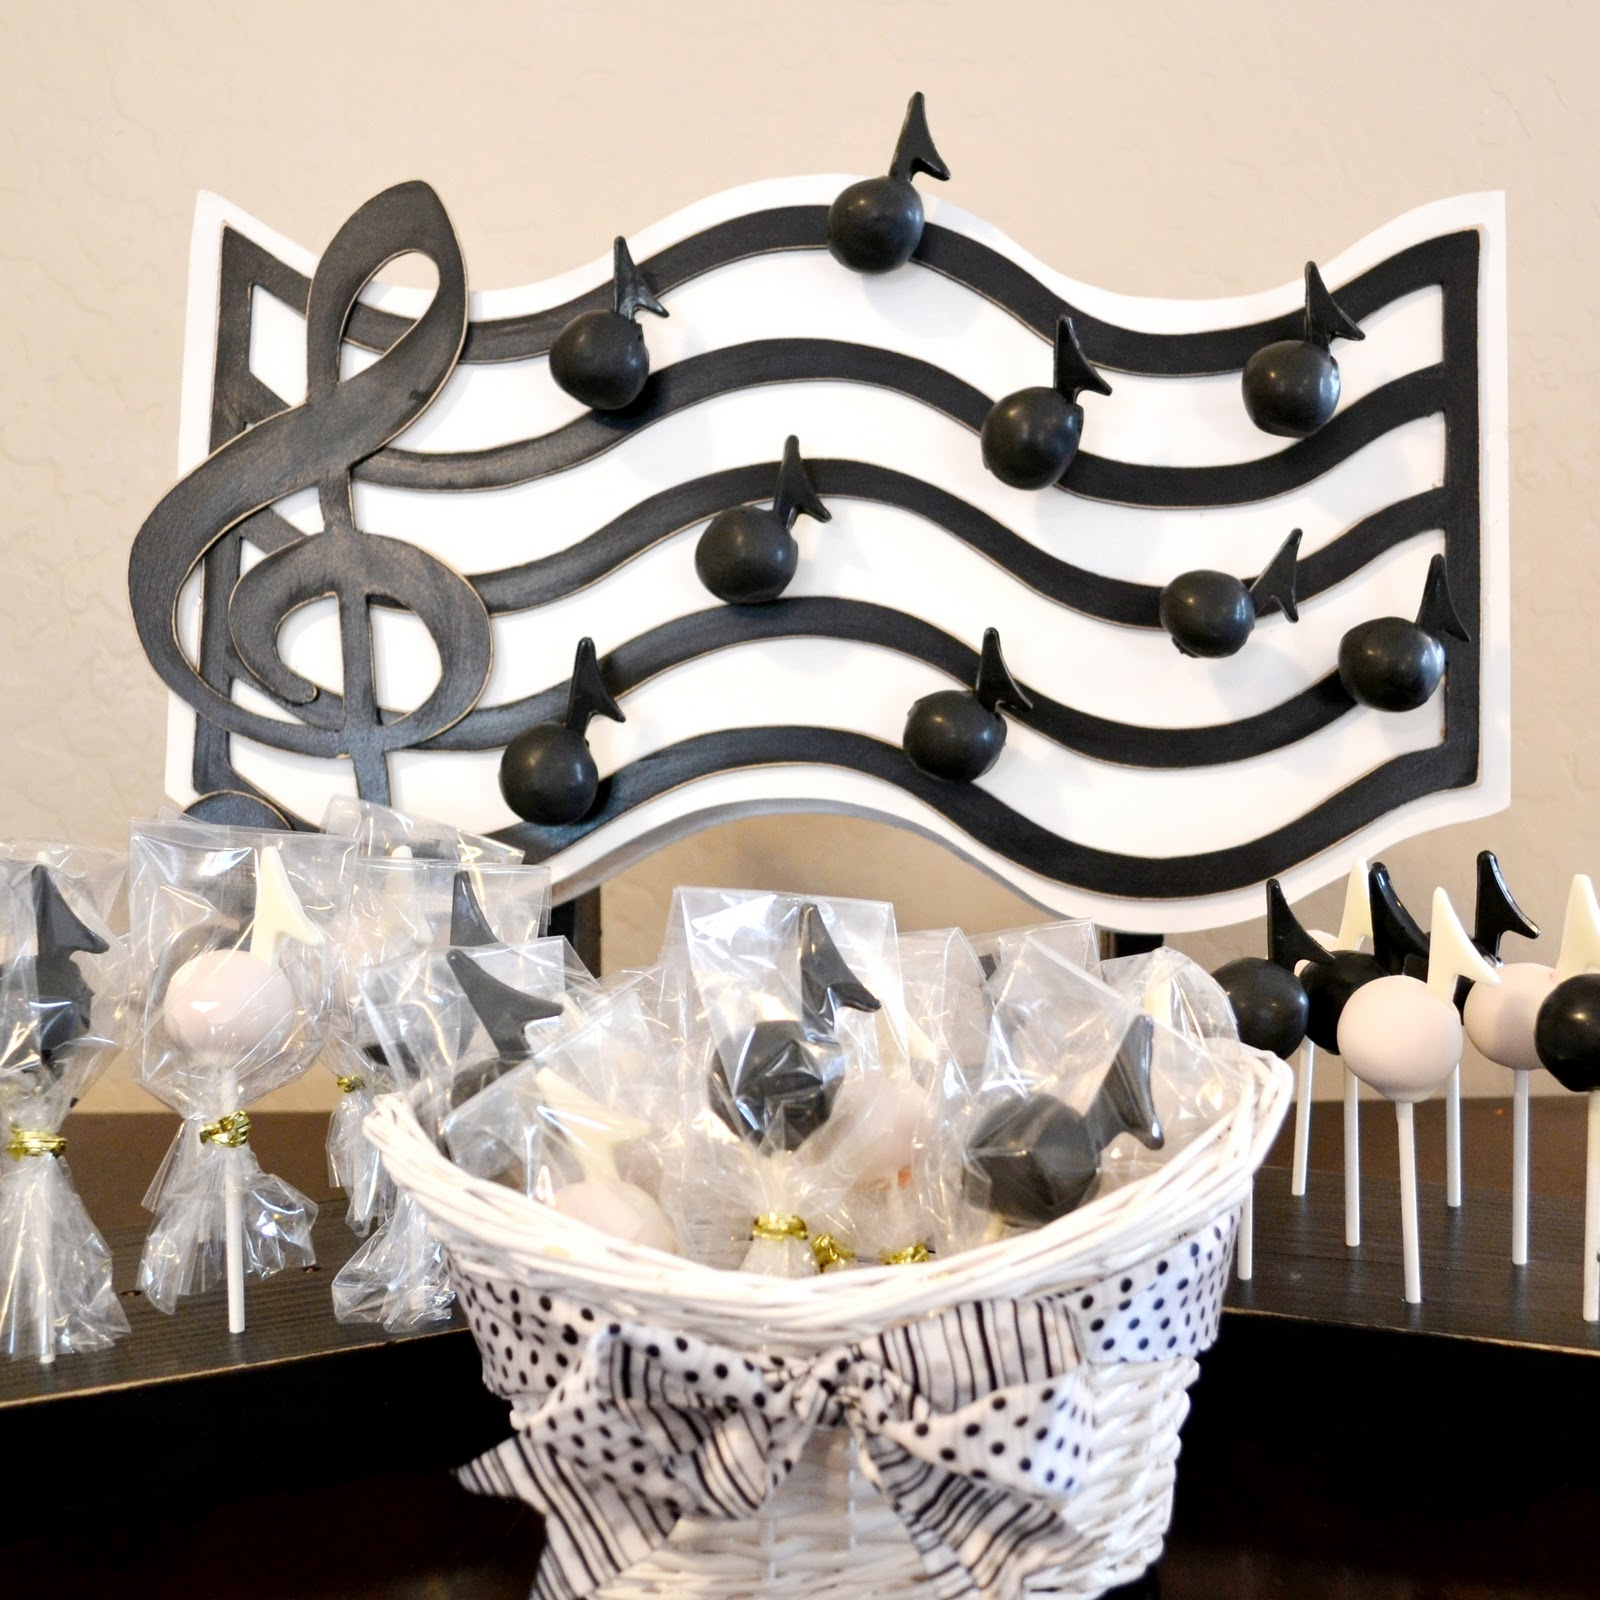 The sew er the caker the copycat maker music cake pop stand for Pop cake decoration